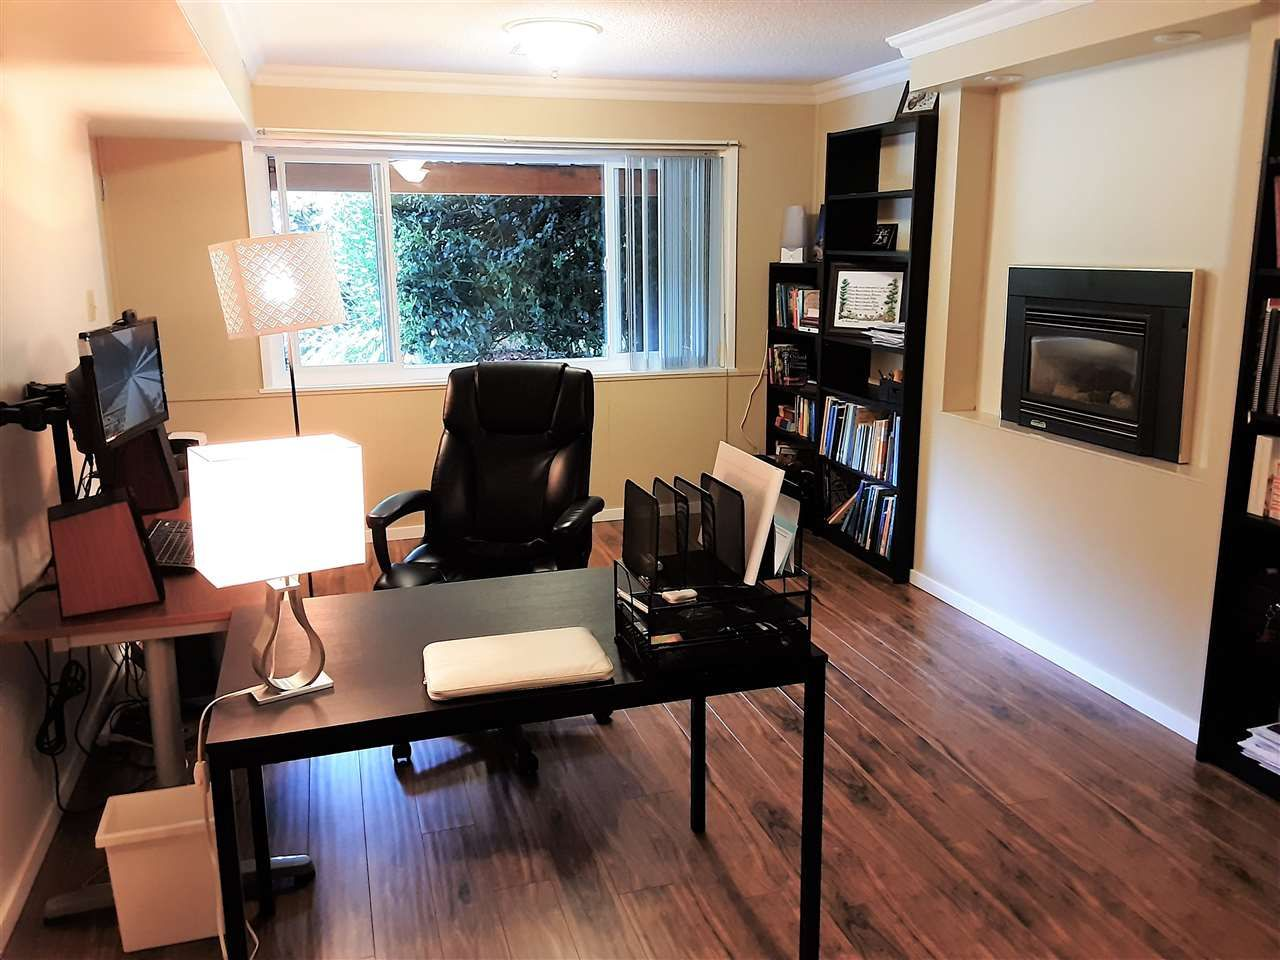 Photo 23: Photos: 15291 COLUMBIA Avenue: White Rock House for sale (South Surrey White Rock)  : MLS®# R2492863